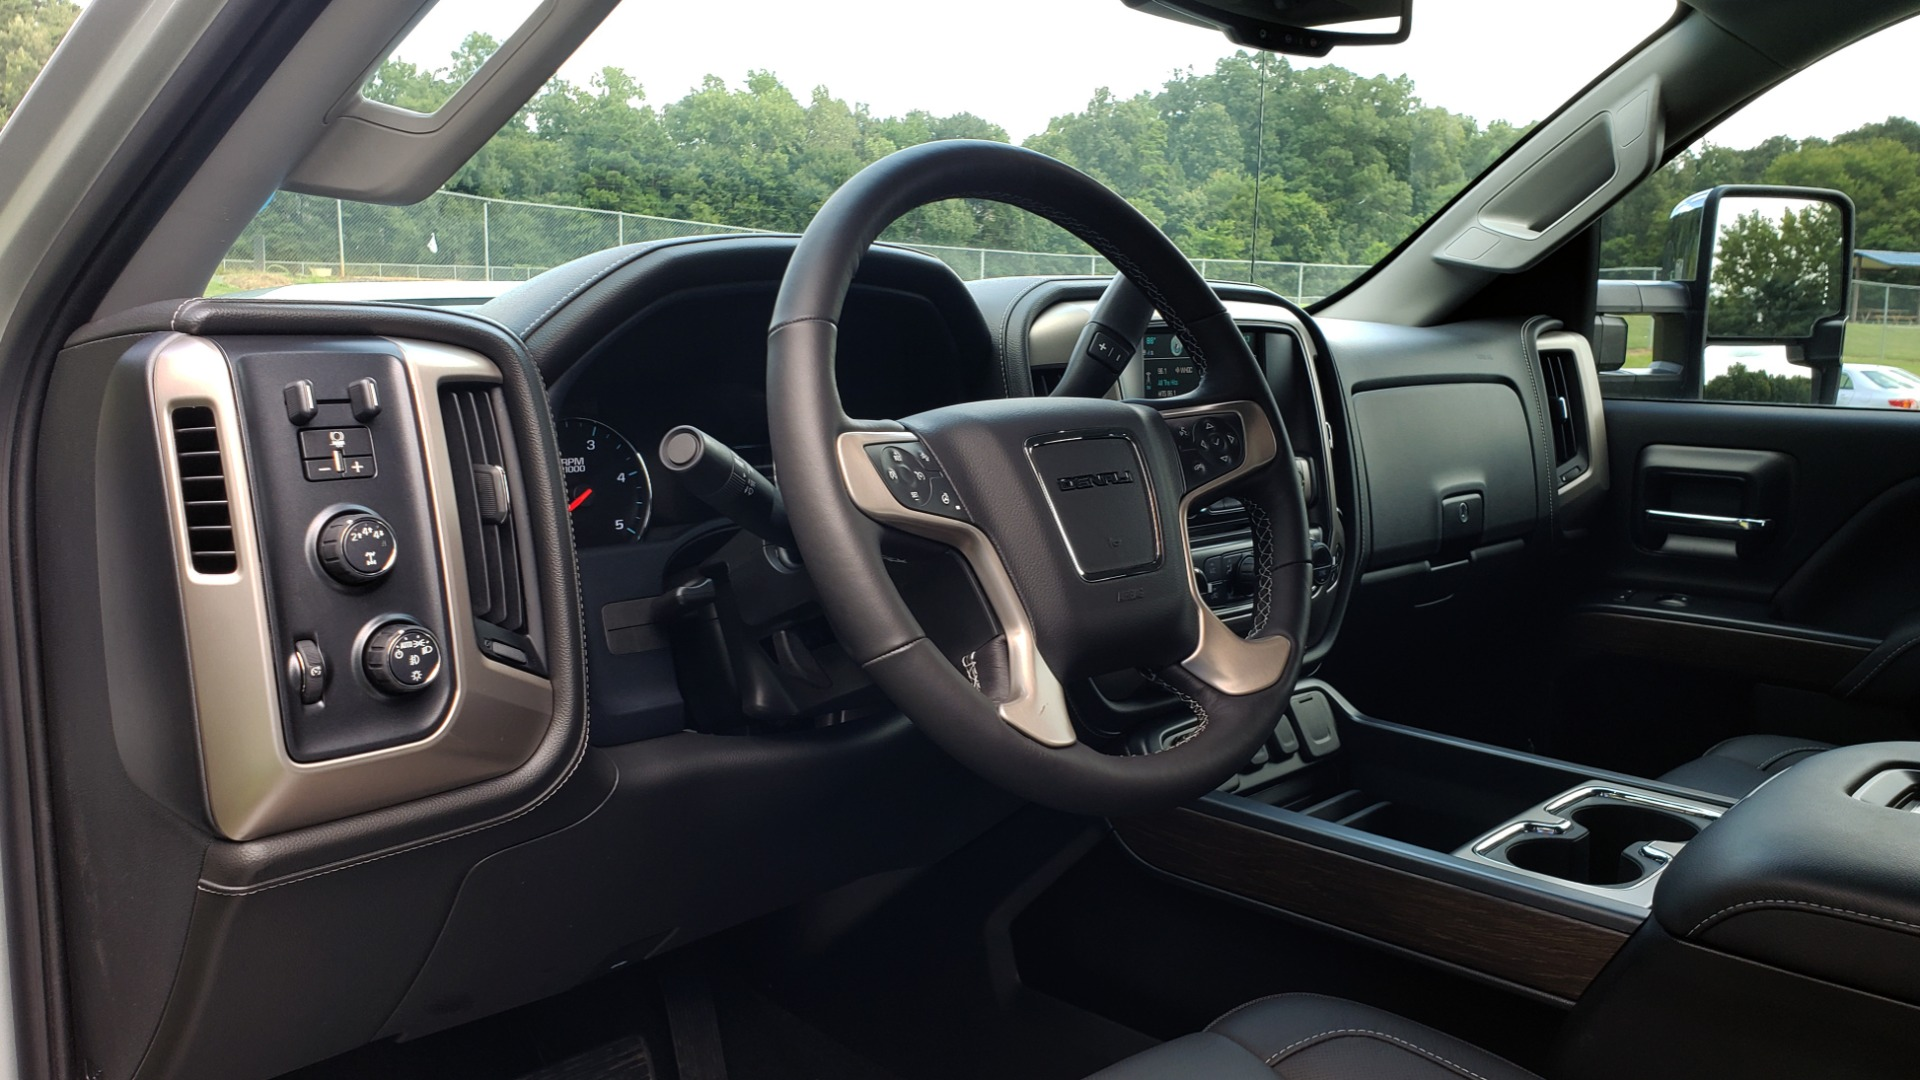 Used 2018 GMC SIERRA 2500HD DENALI 4WD / 6.6L DURAMAX / NAV / SUNROOF / BOSE / REARVIEW for sale Sold at Formula Imports in Charlotte NC 28227 43